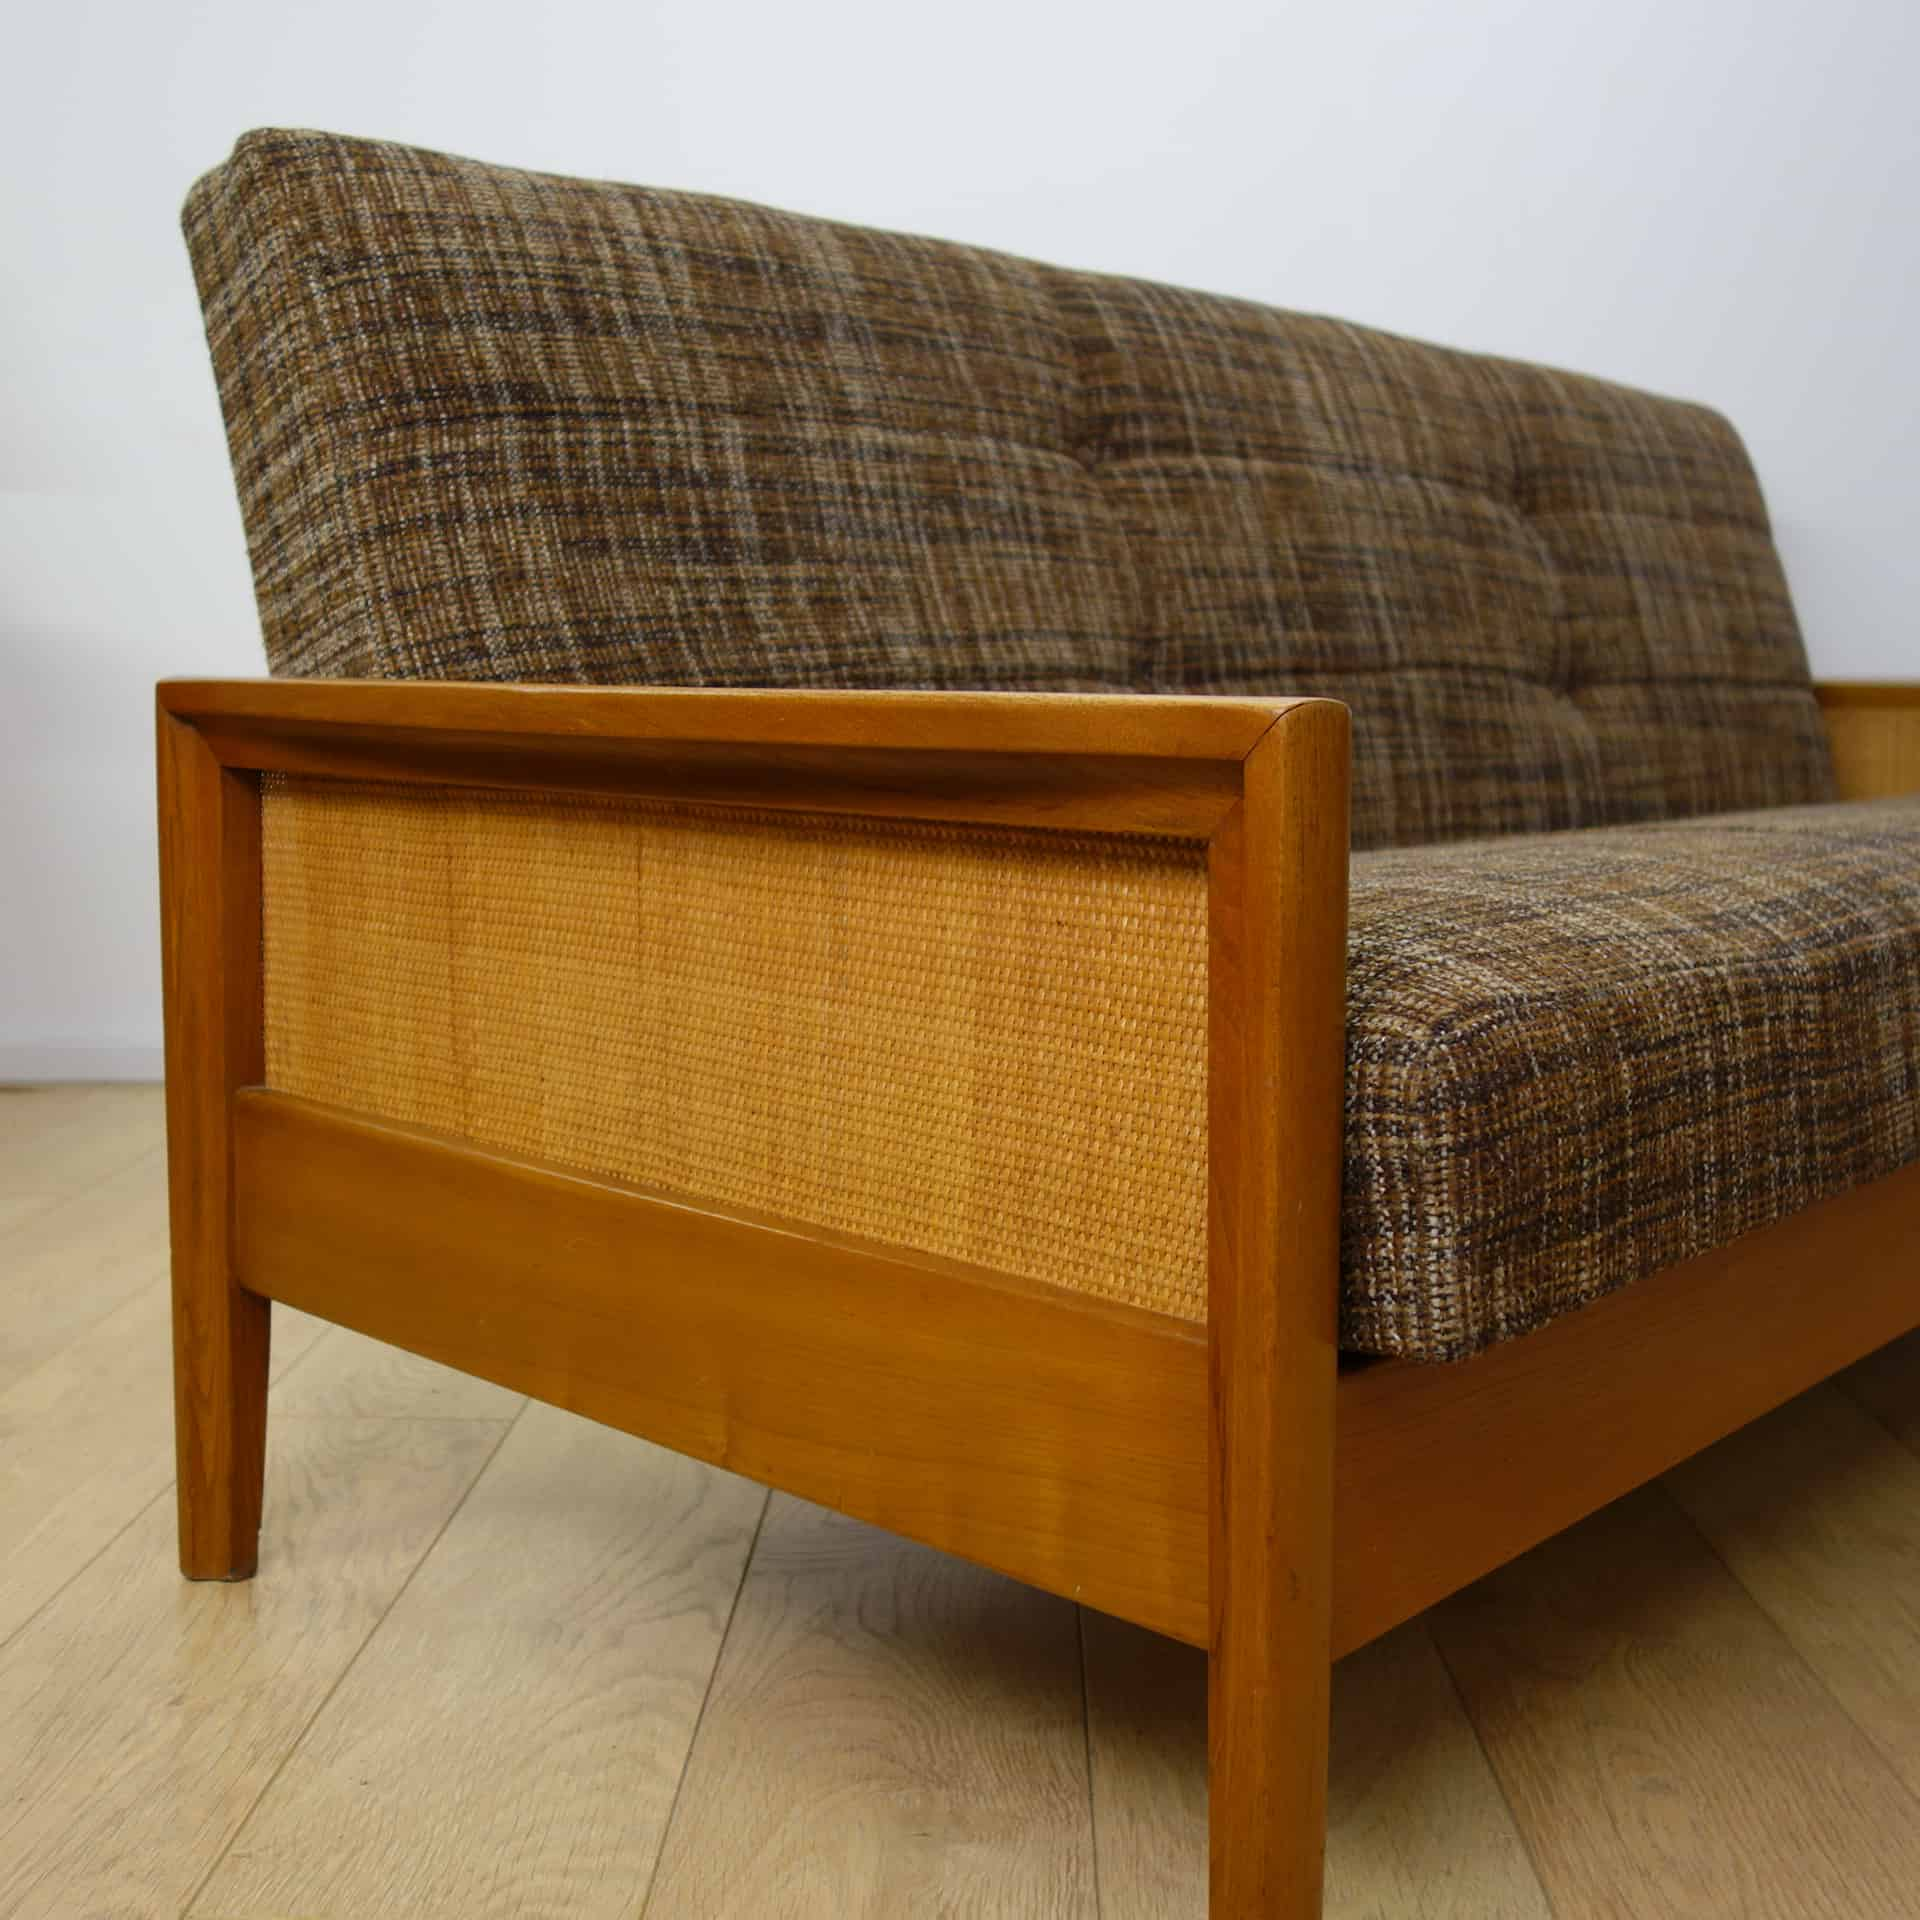 cane sofa bed 1 person 1960s with rattan sides mark parrish mid